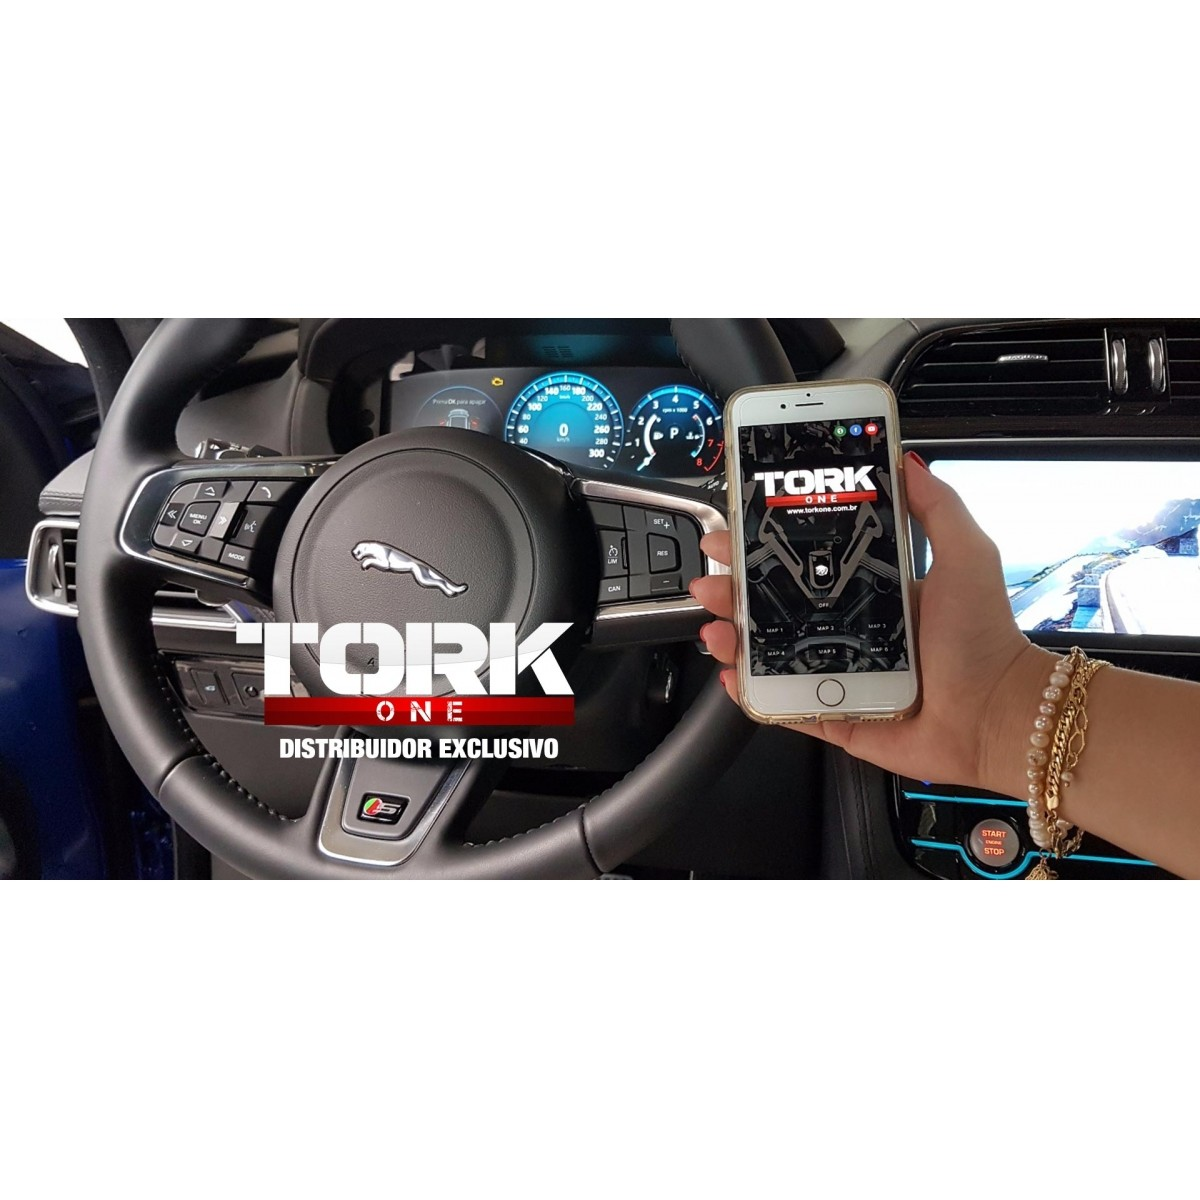 Gás Pedal - MIni Cooper - Tork One c/s Bluetooth